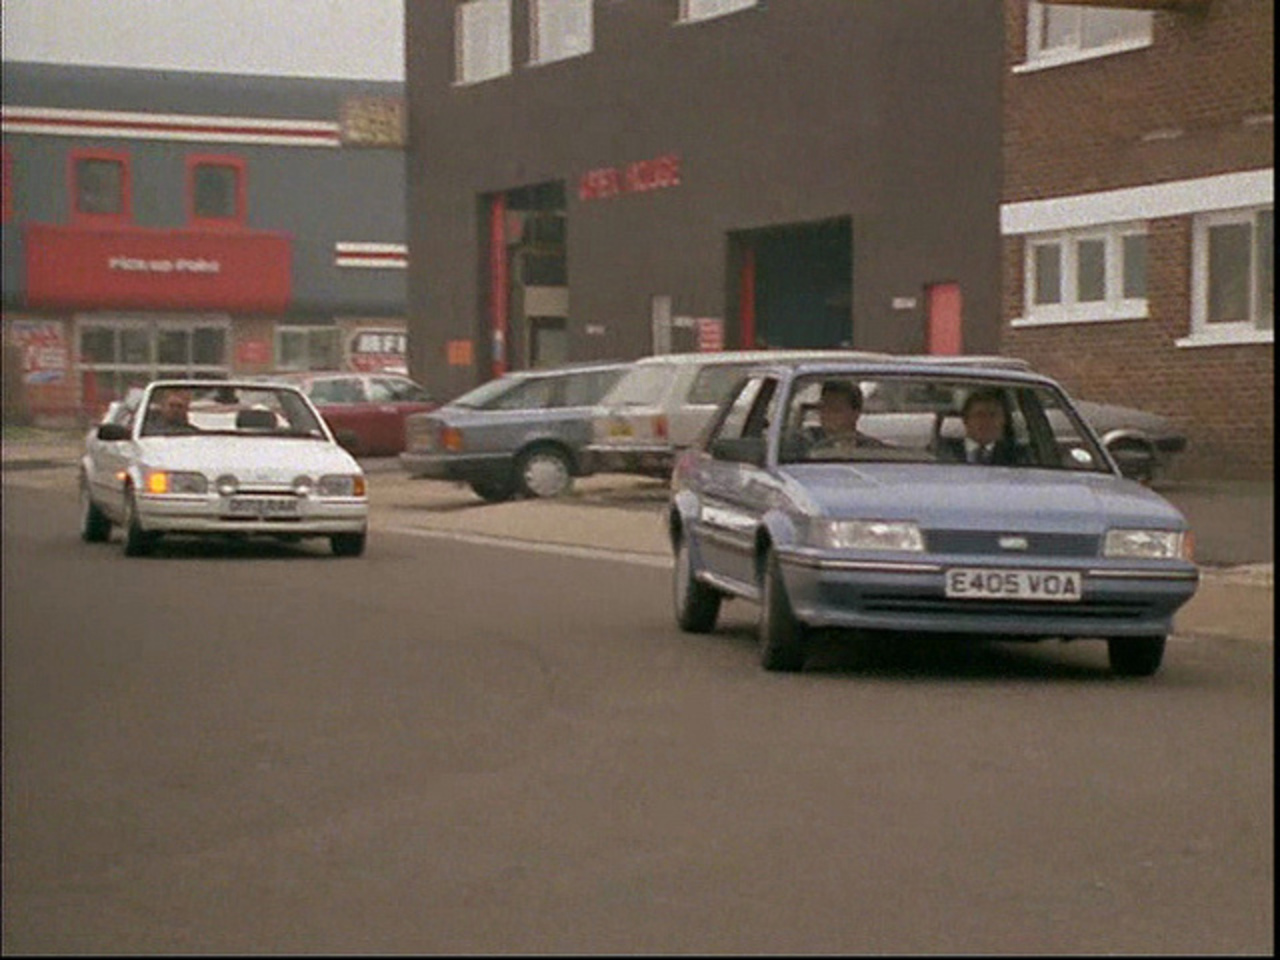 1988 Austin Montego 1.3 L and 1986 Ford Escort XR3i Cabriolet ...